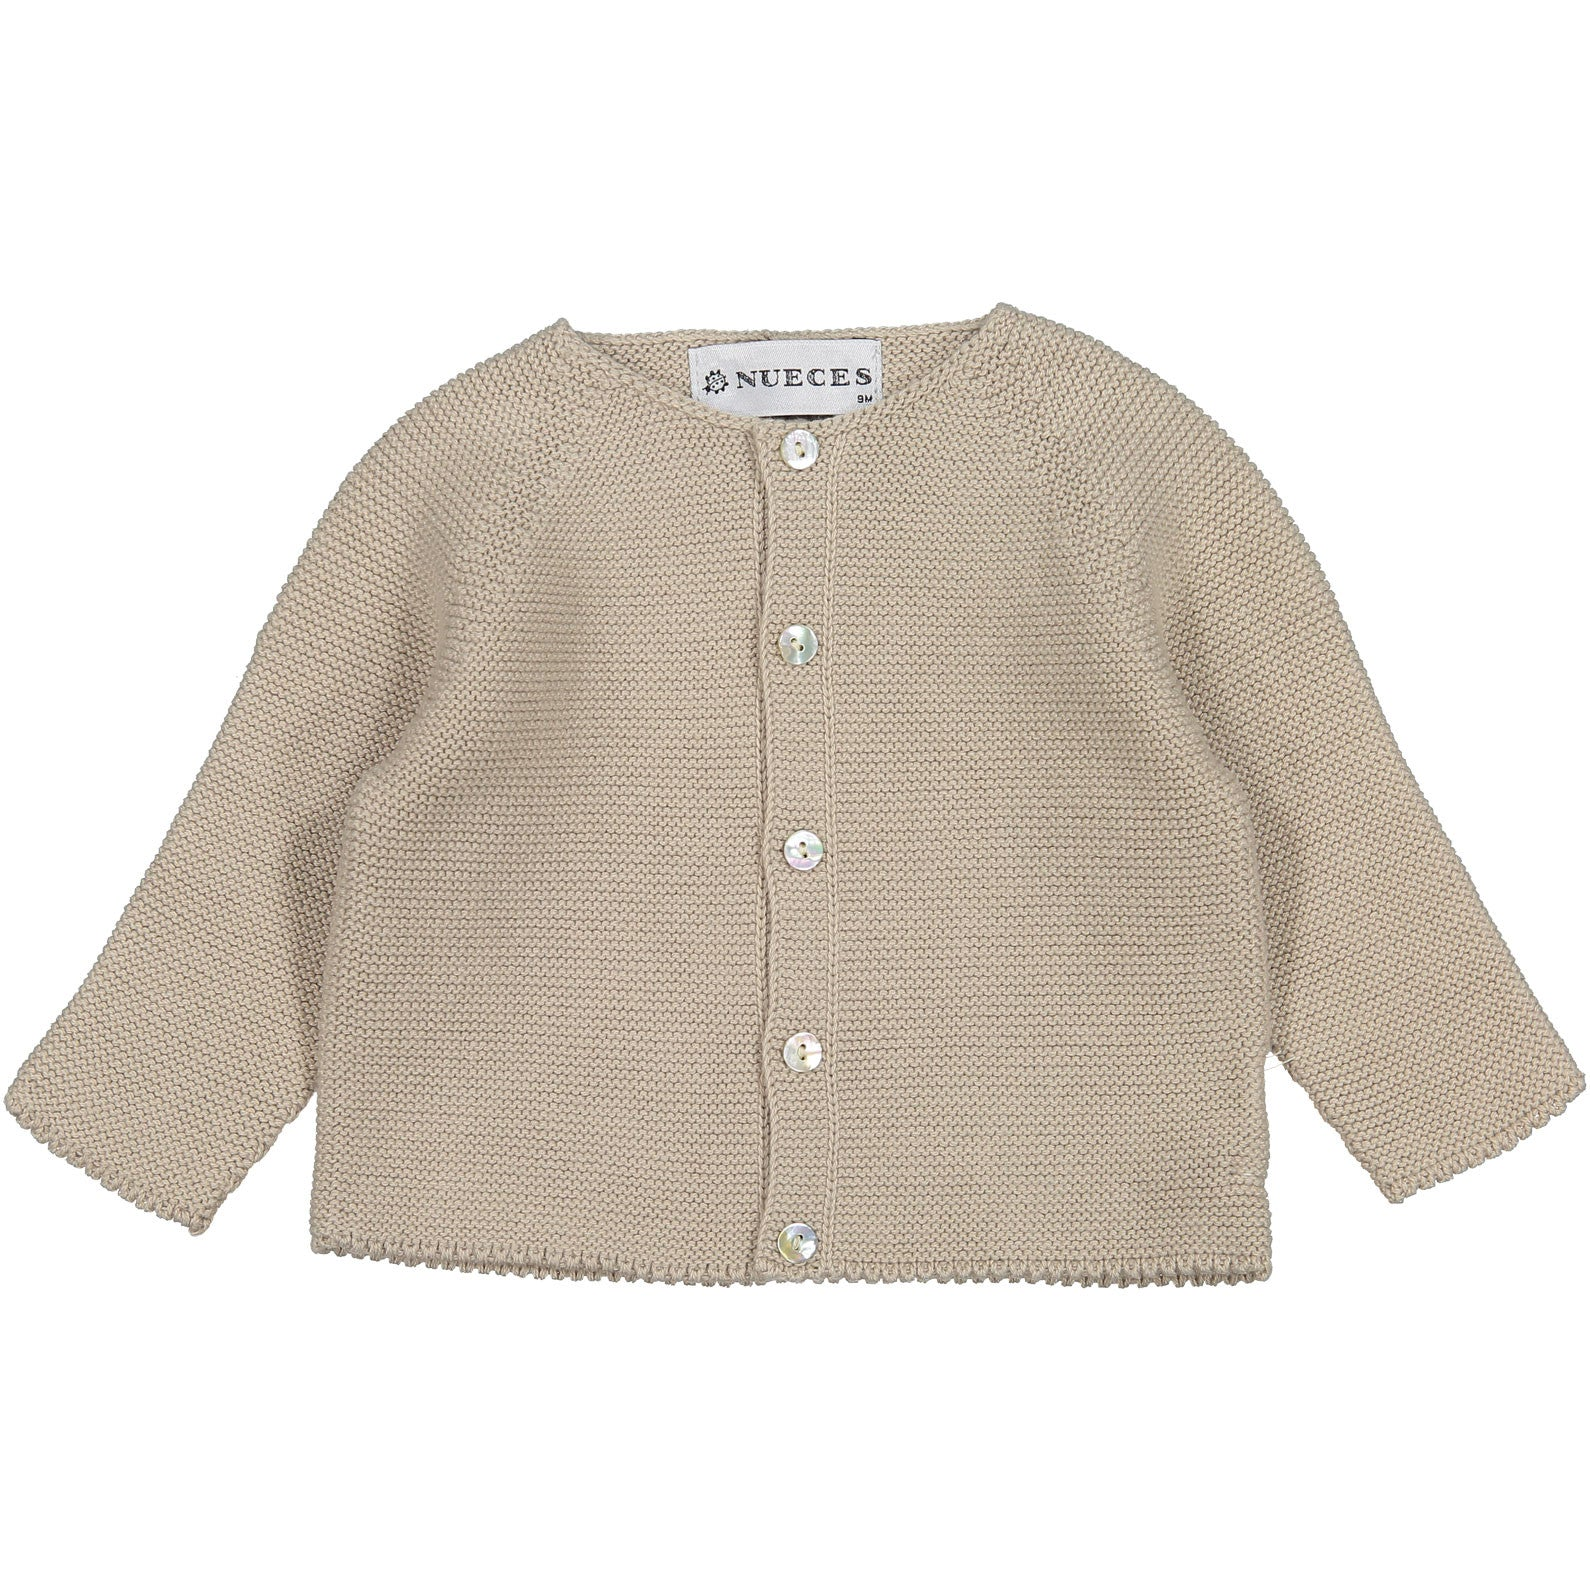 Nueces Sand Baby Sweater - Ladida